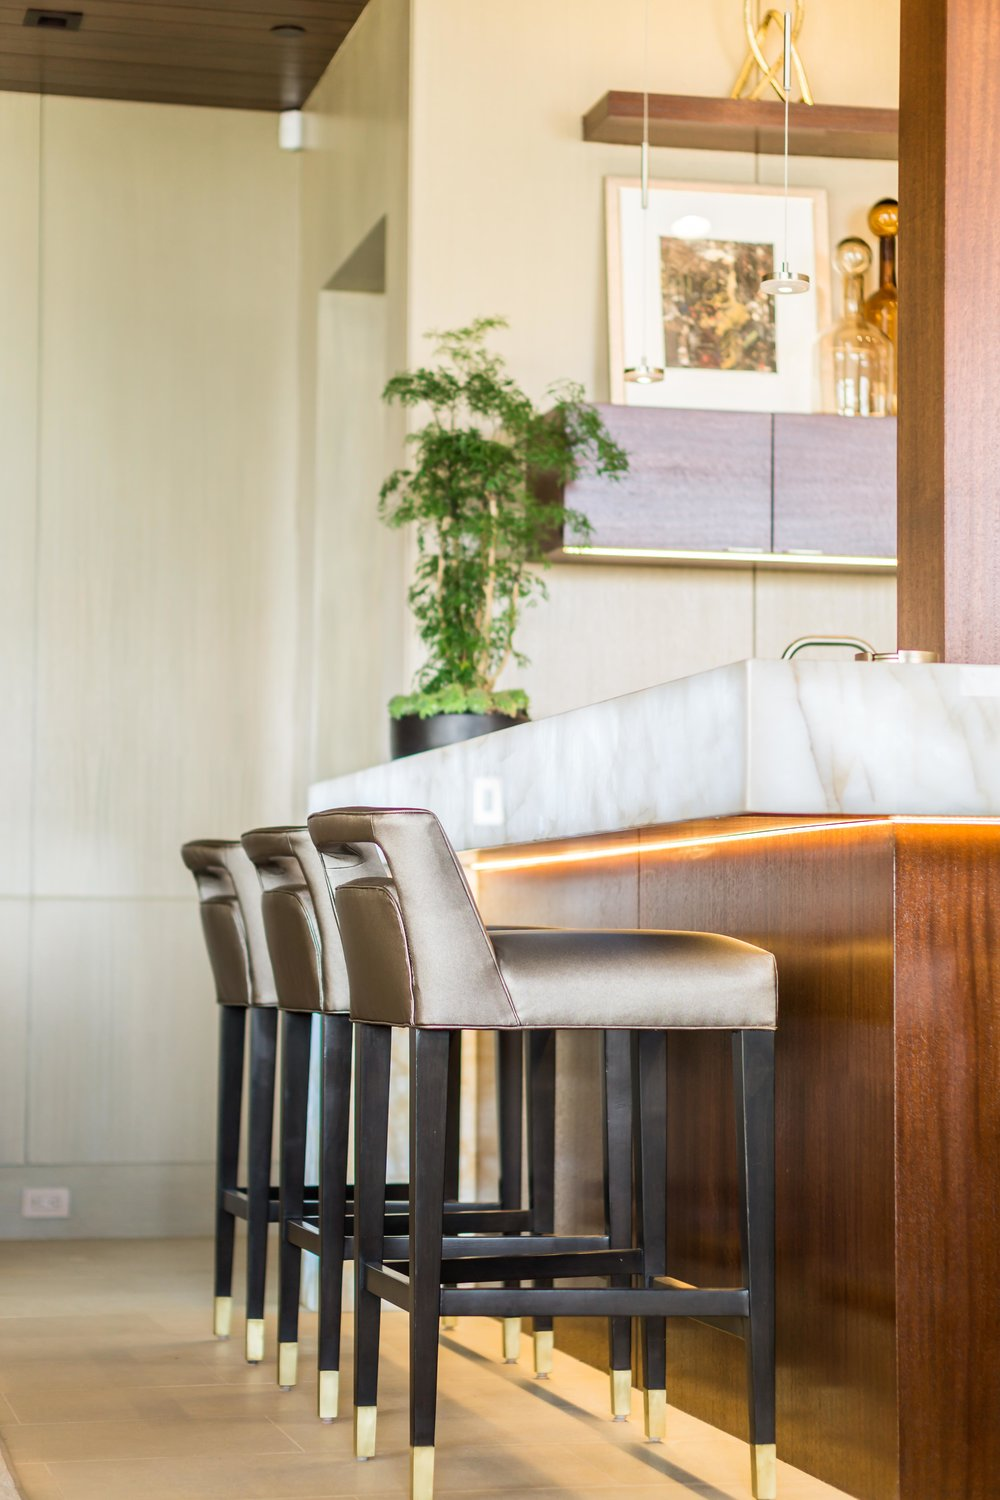 Professional interior photograph a Modern and sleek Led Illuminated bar and barstools